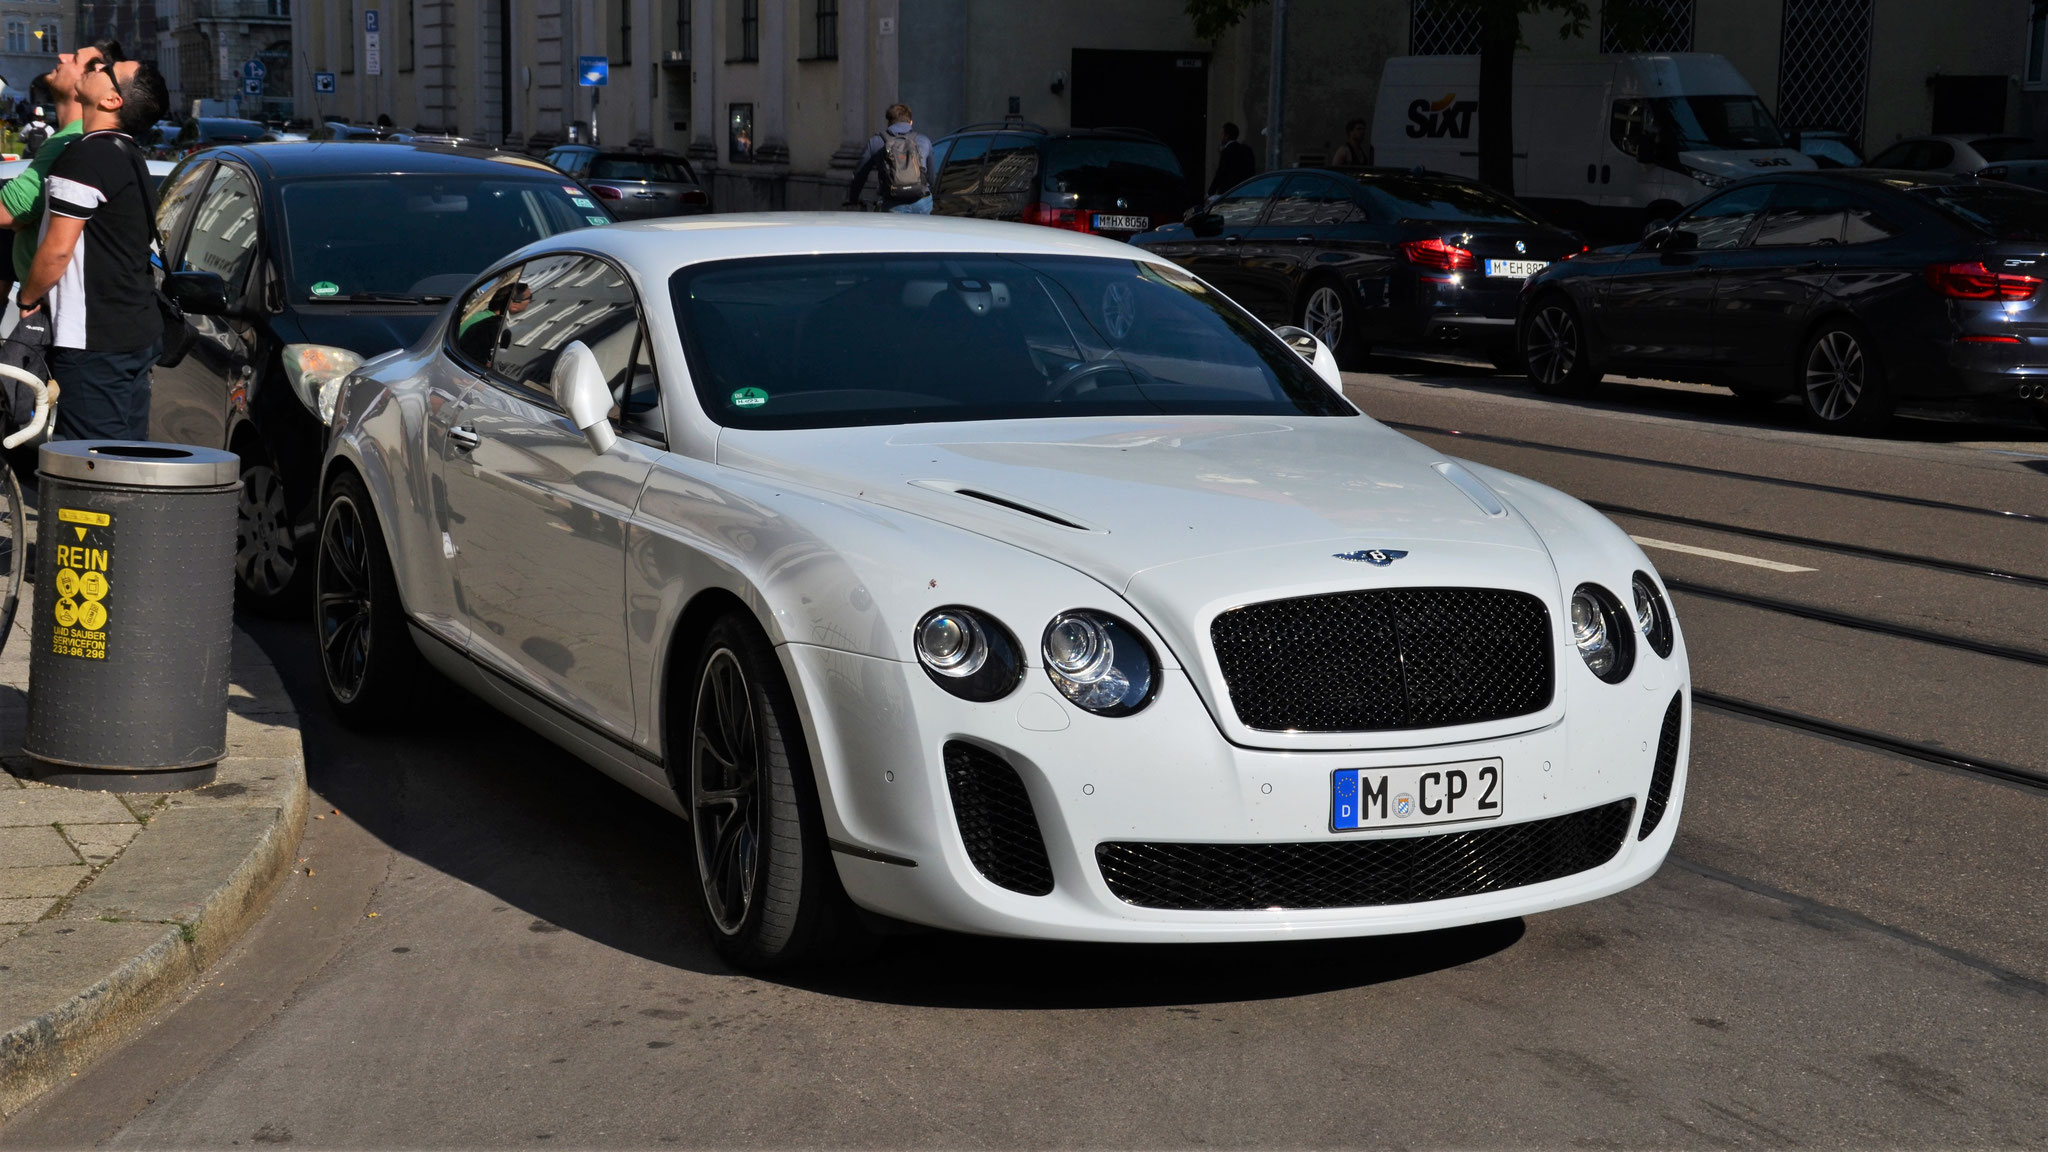 Bentley Continental GT Supersports - M-CP-2